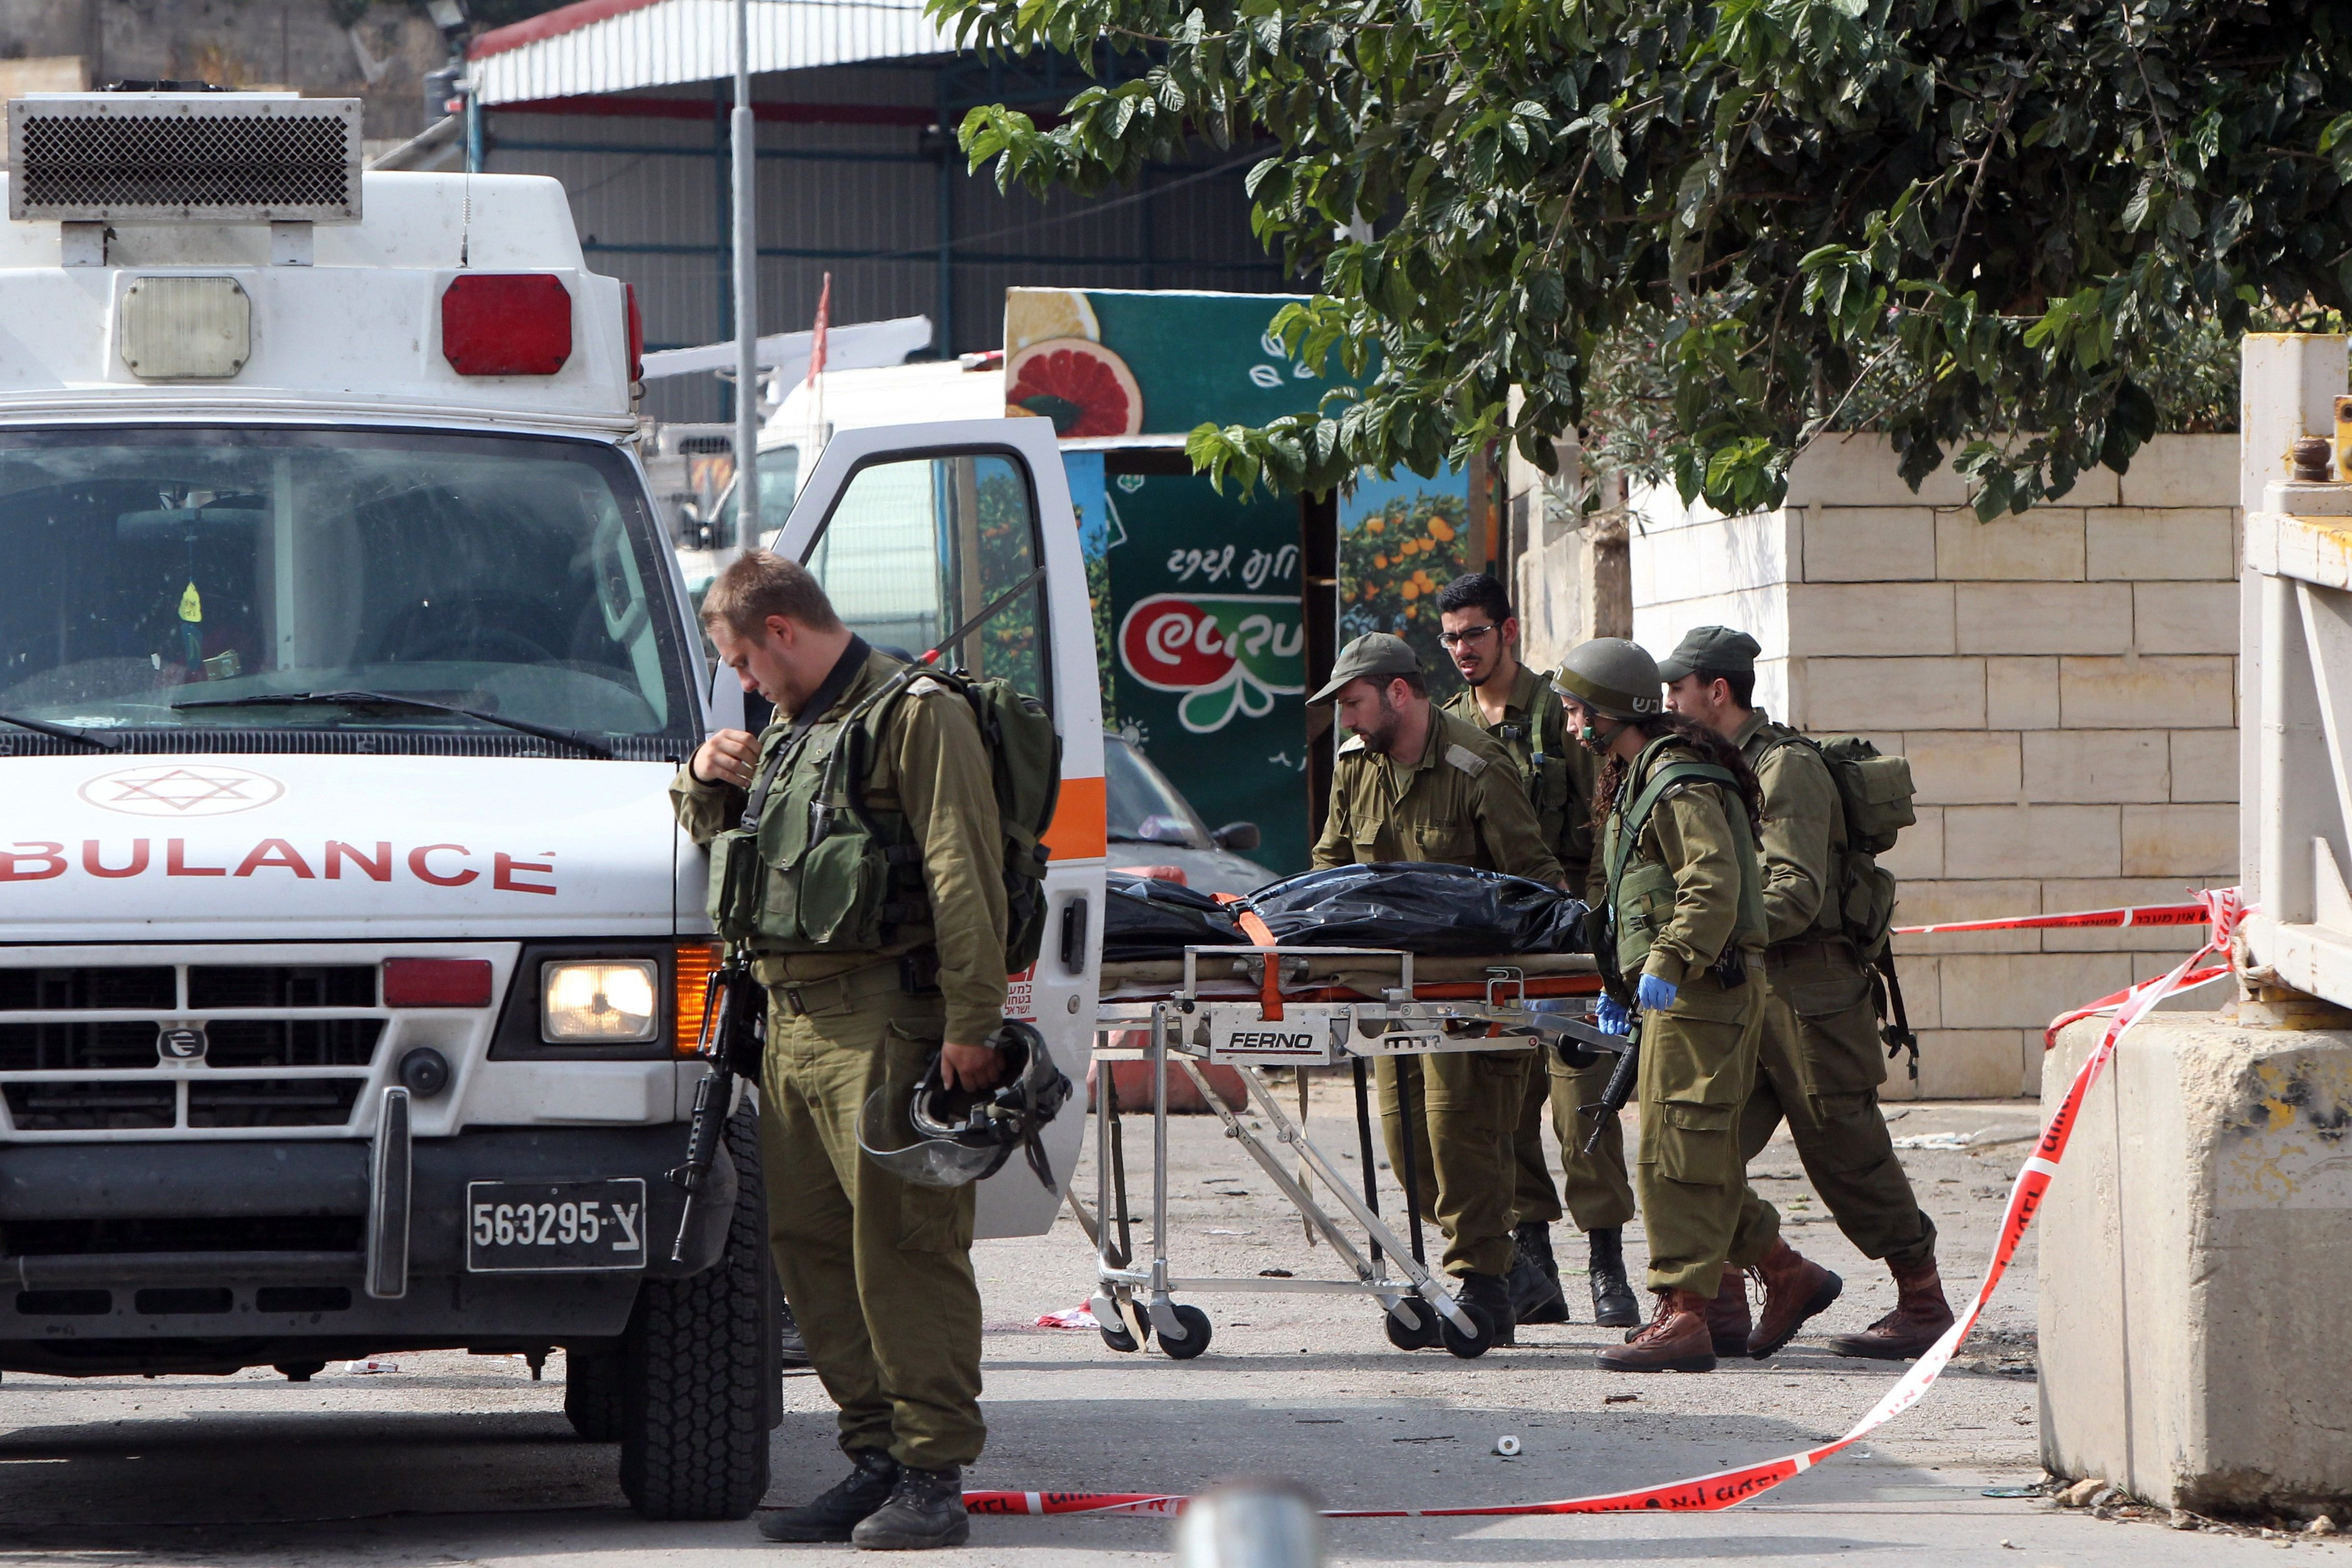 The attacker, a Palestinian university student, was shot and killed by IDF troops at the scene of the stabbing